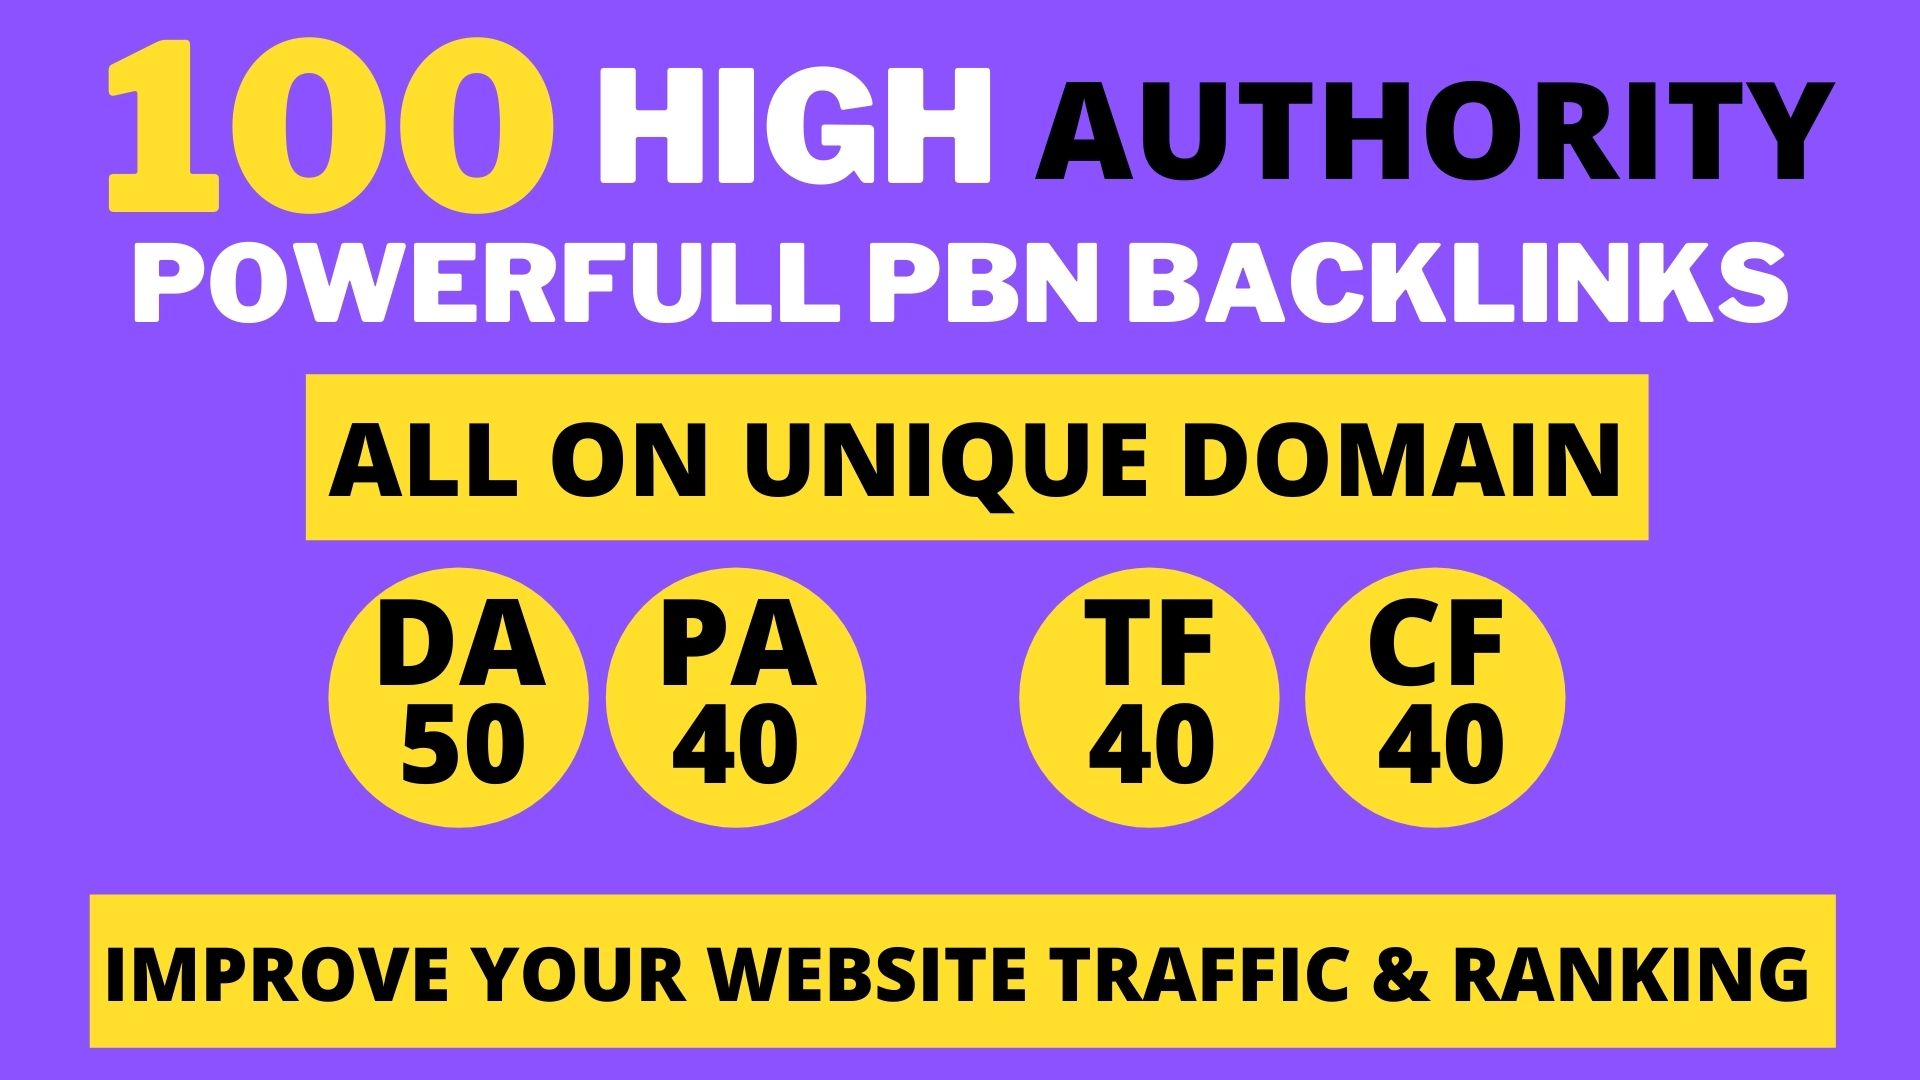 100+ High DA 60+ HQ Links to RANK your website by boosting your web authority